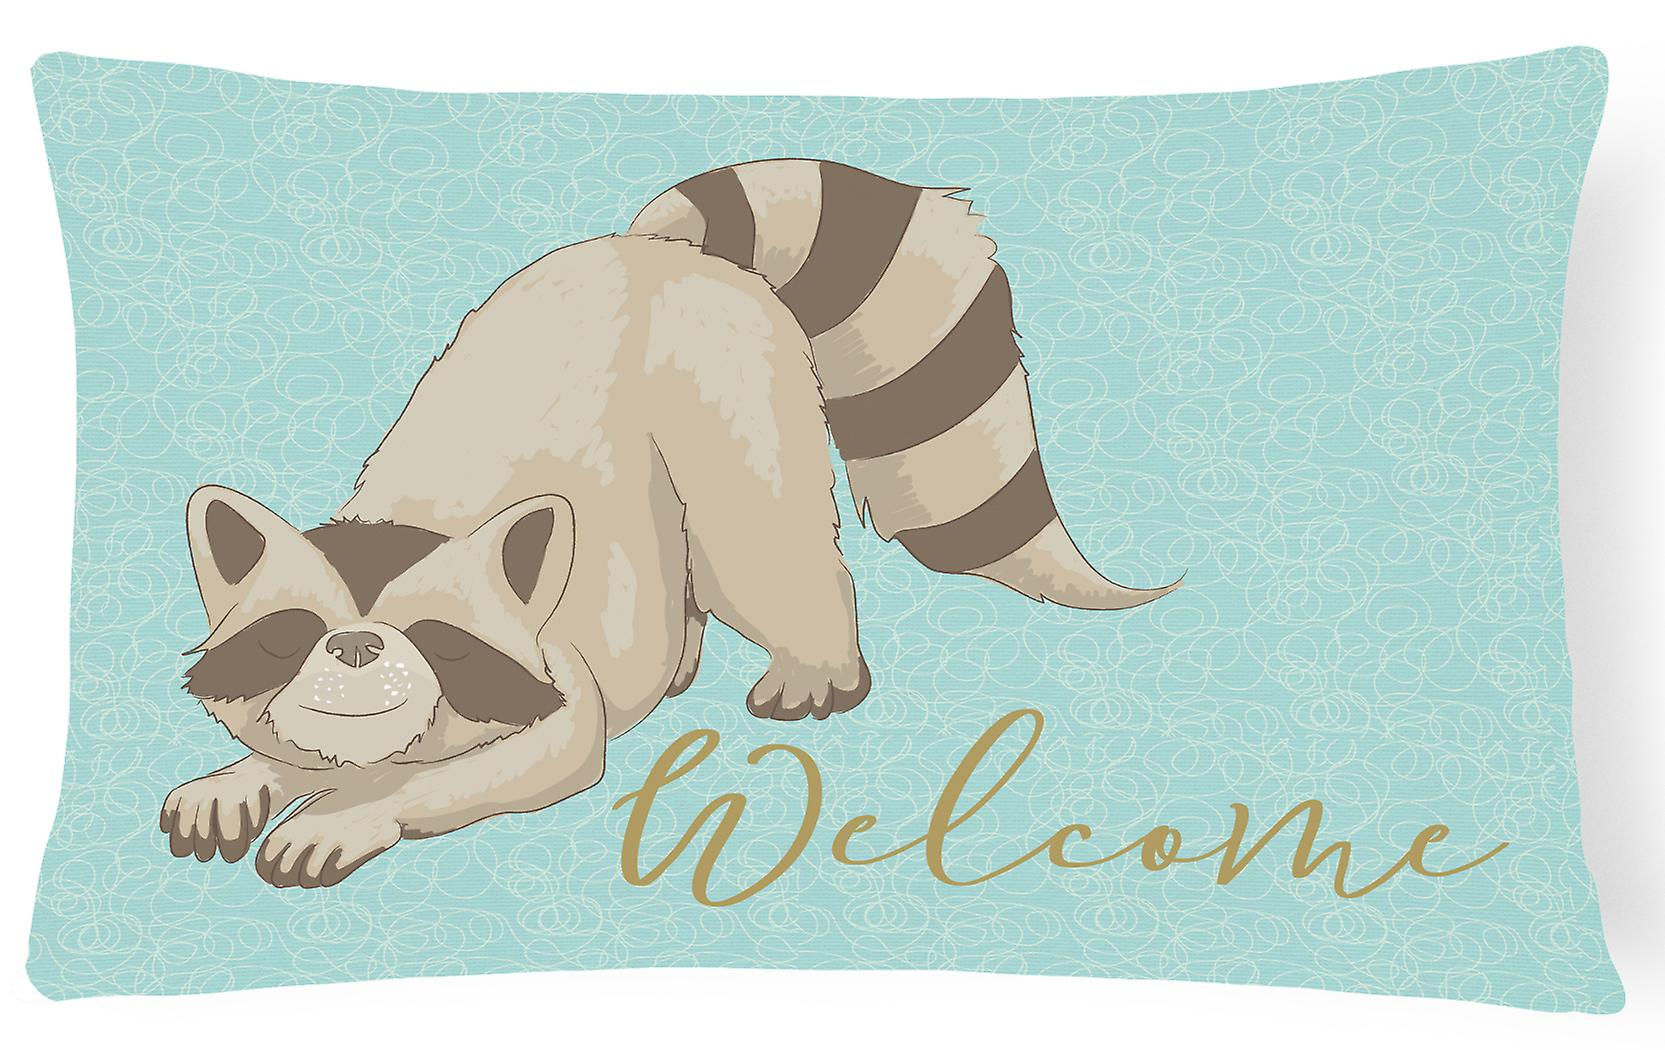 Welcome Decorative Raccoon Pillow Canvas Fabric iOkXuTZP